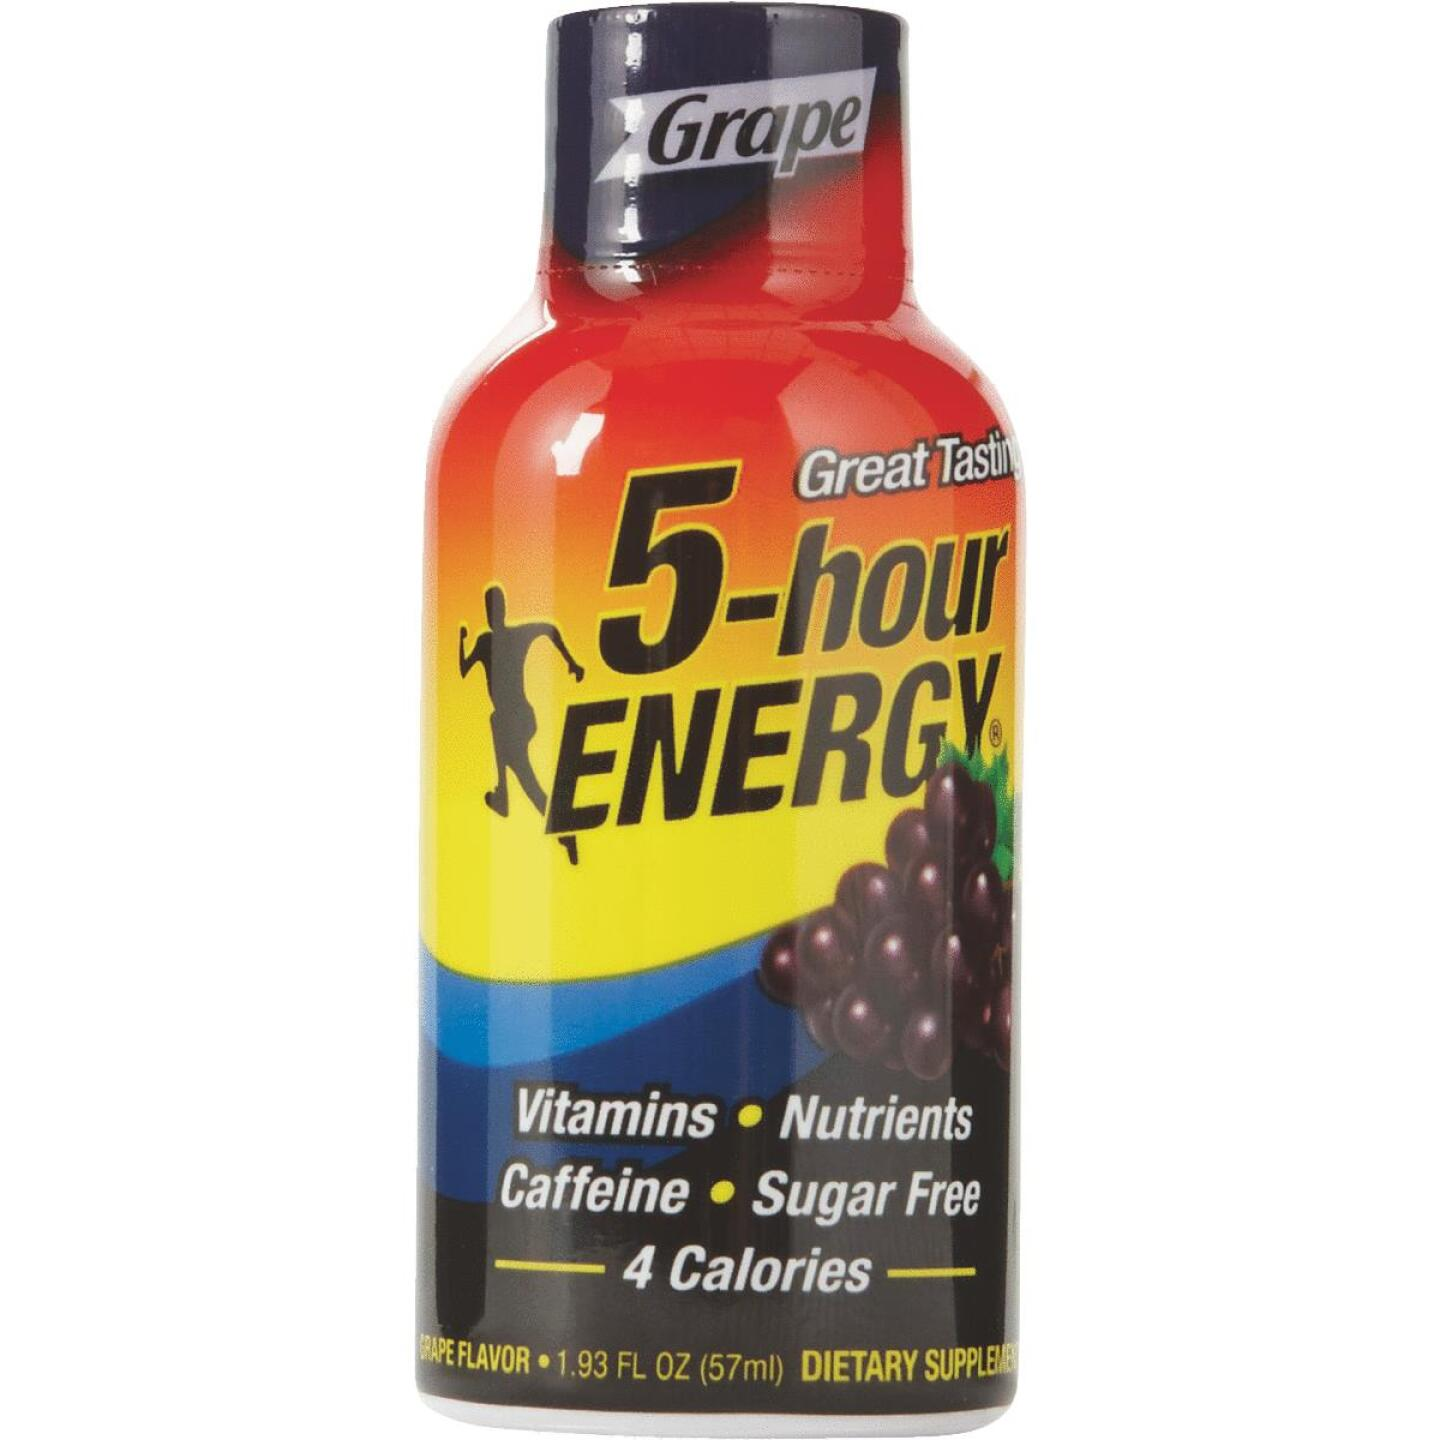 5 Hour Energy 1.93 Oz. Grape Flavor Energy Drink Image 1